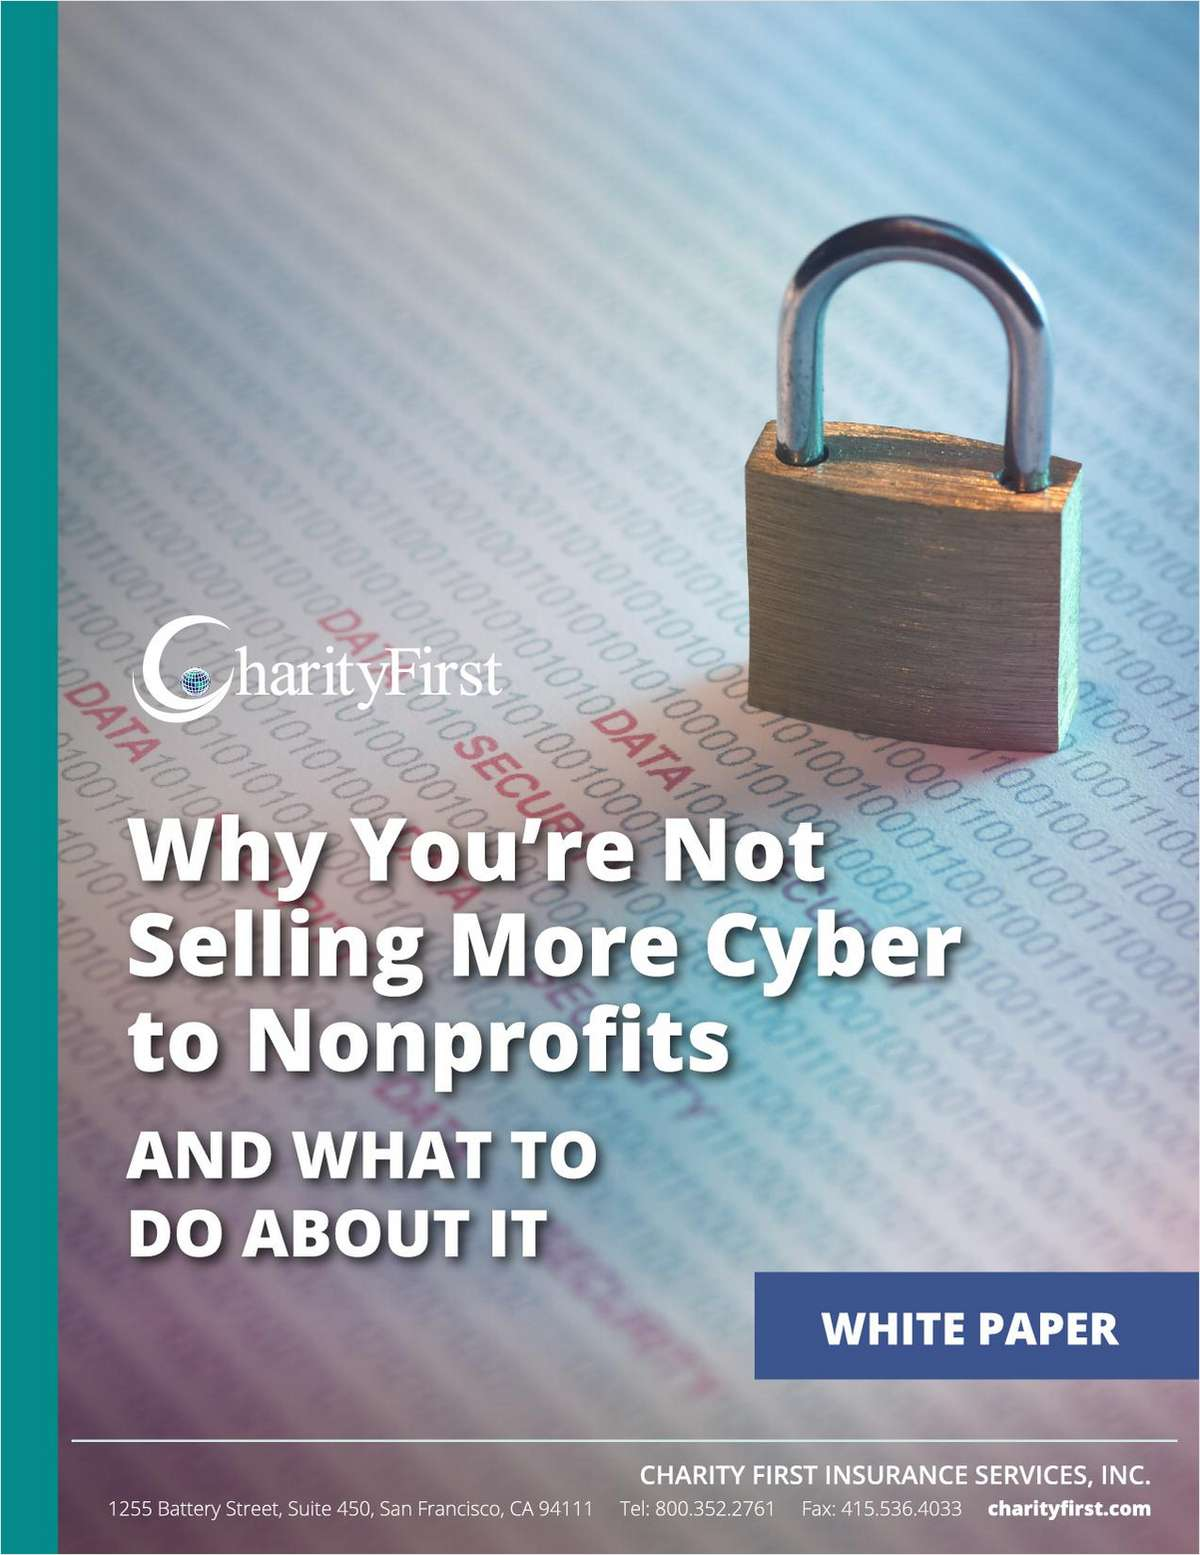 Why You're Not Selling More Cyber to Nonprofits and What To Do About It